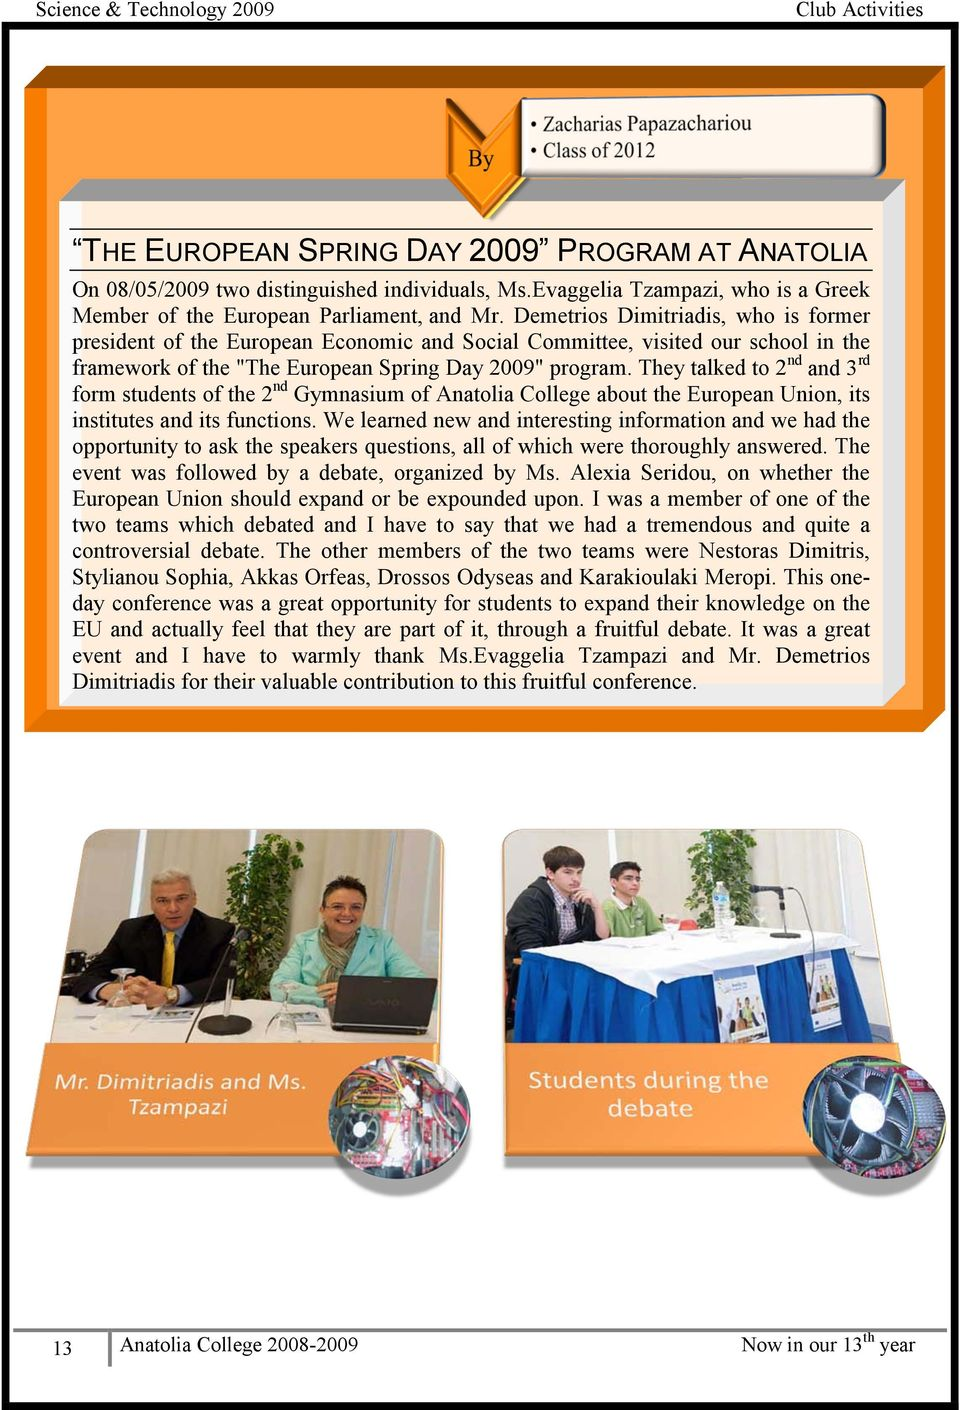 "Demetrios Dimitriadis, who is former president of the European Economic and Social Committee, visited our school in the framework of the ""The European Spring Day 2009"" program."